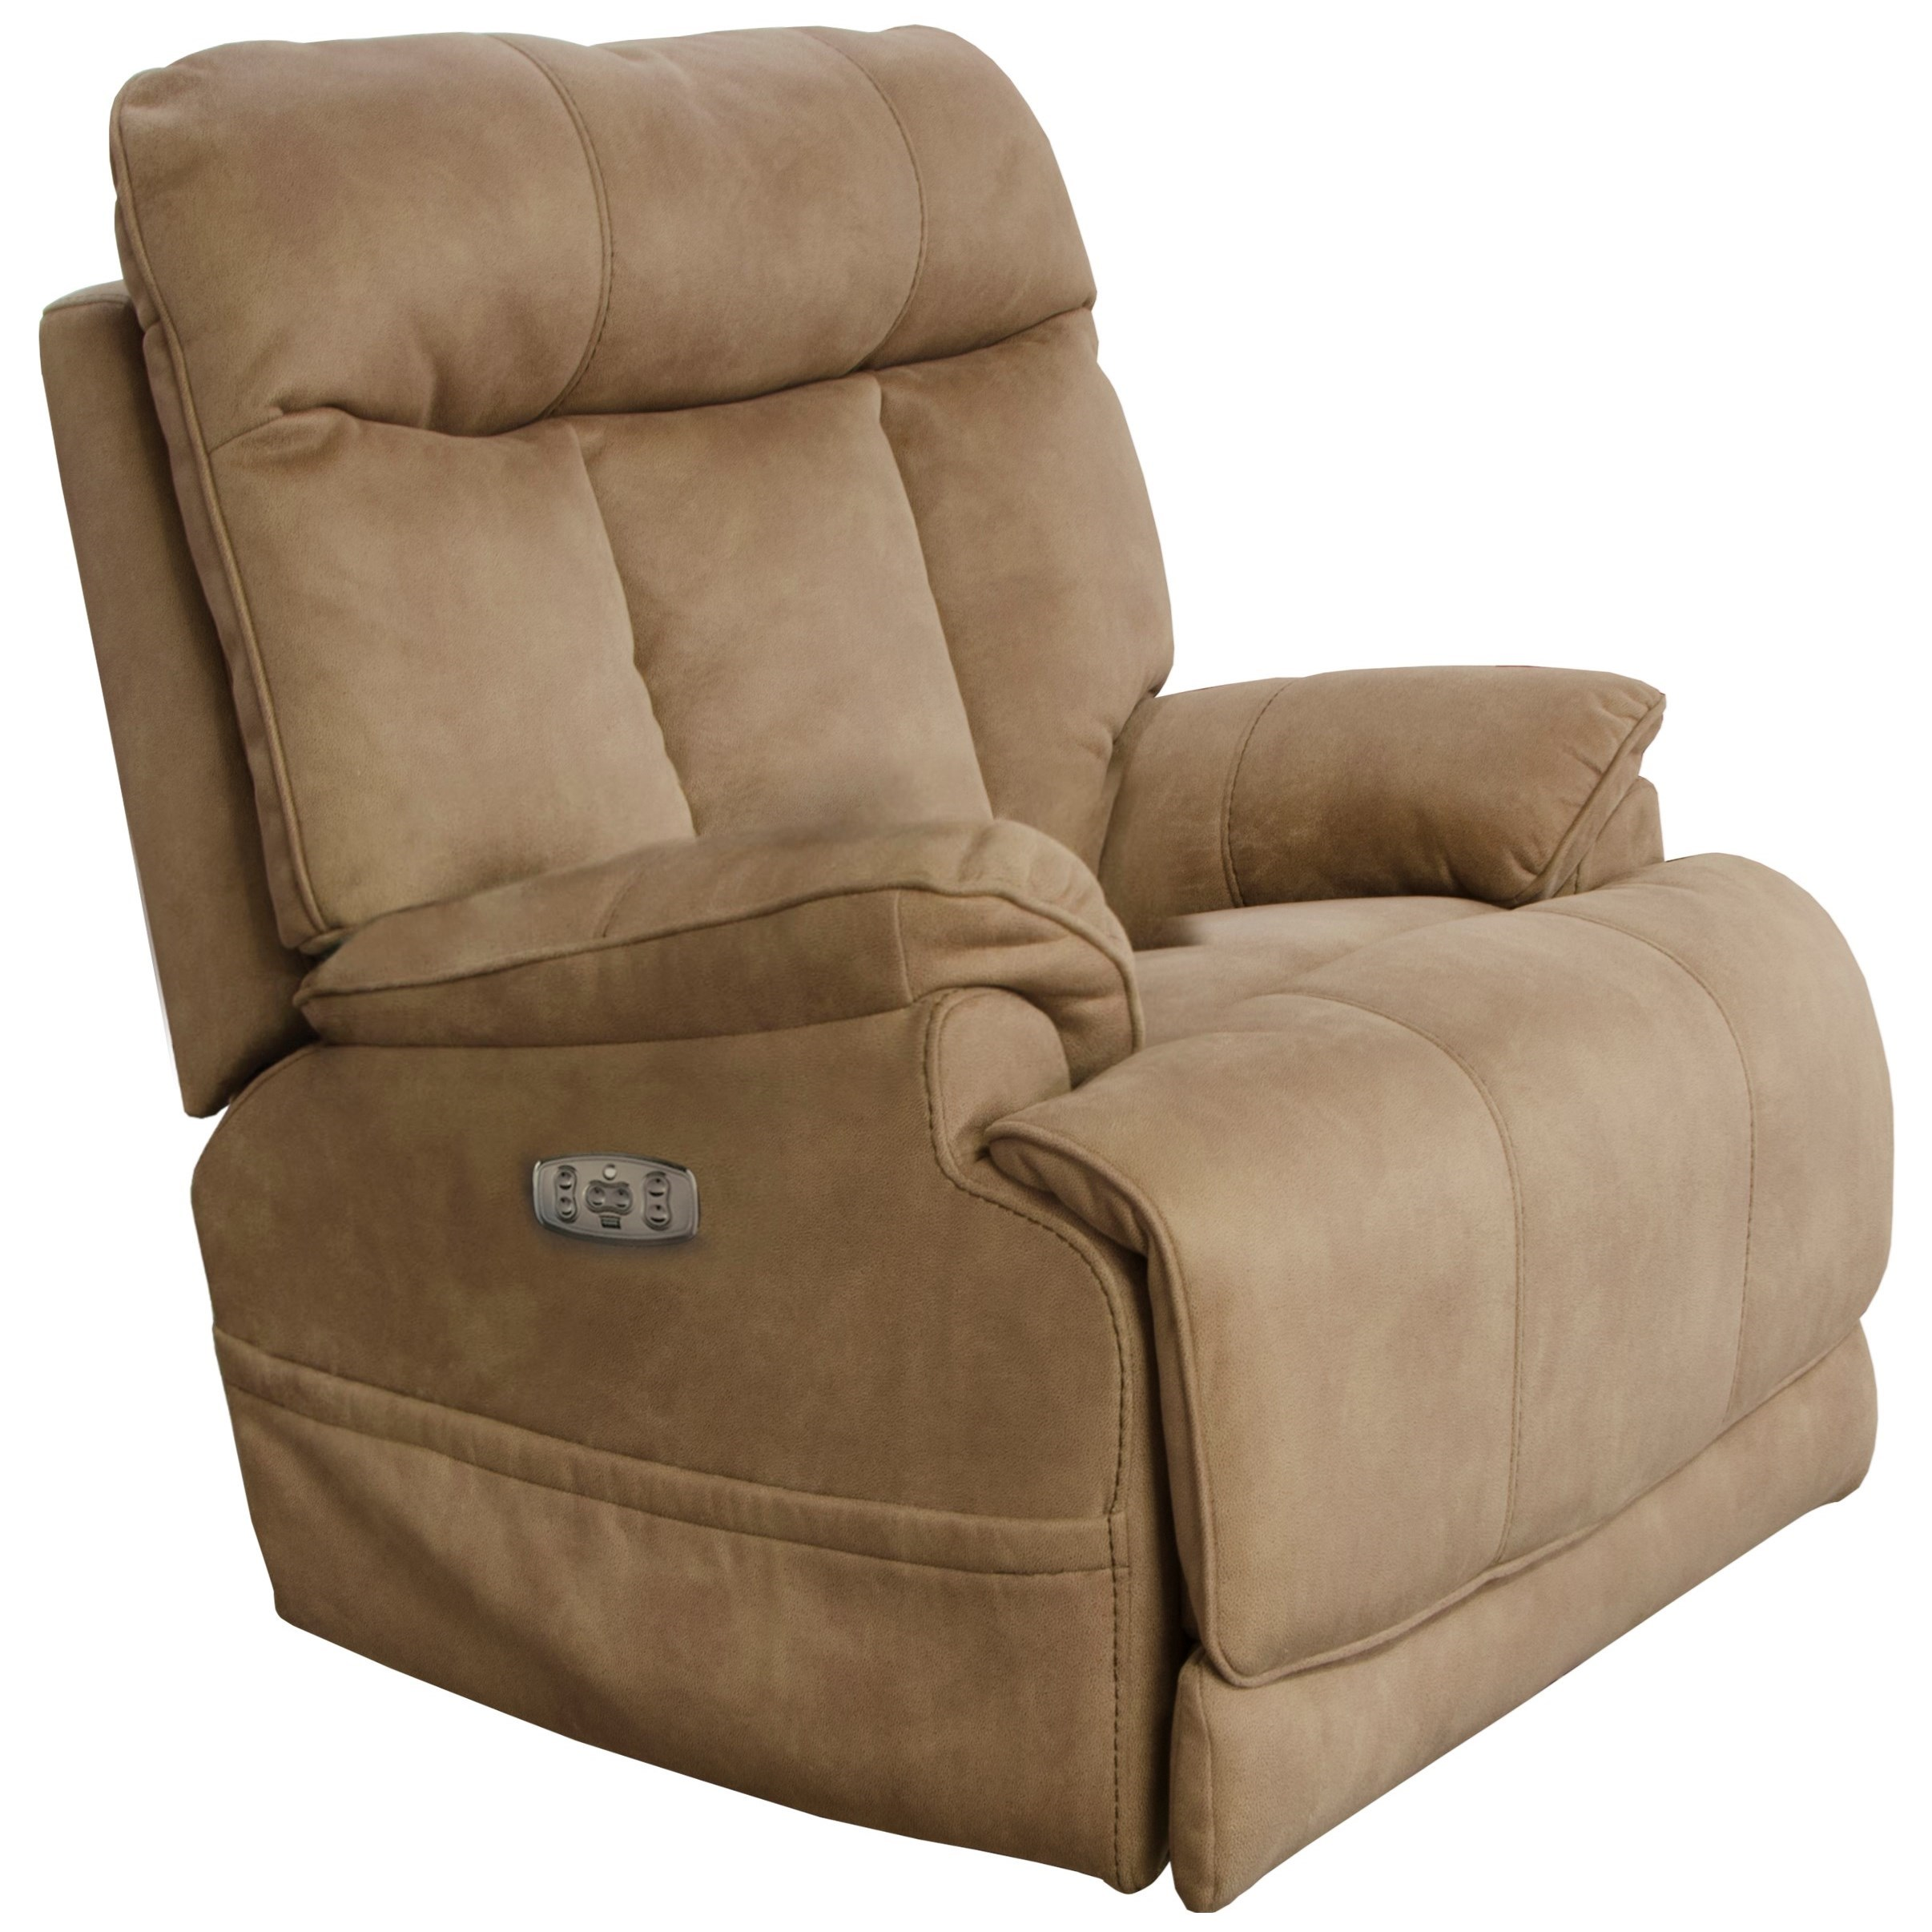 Catnapper Amos Power Lay Flat Recliner - Item Number: 764562-7-1153-36-1253-36